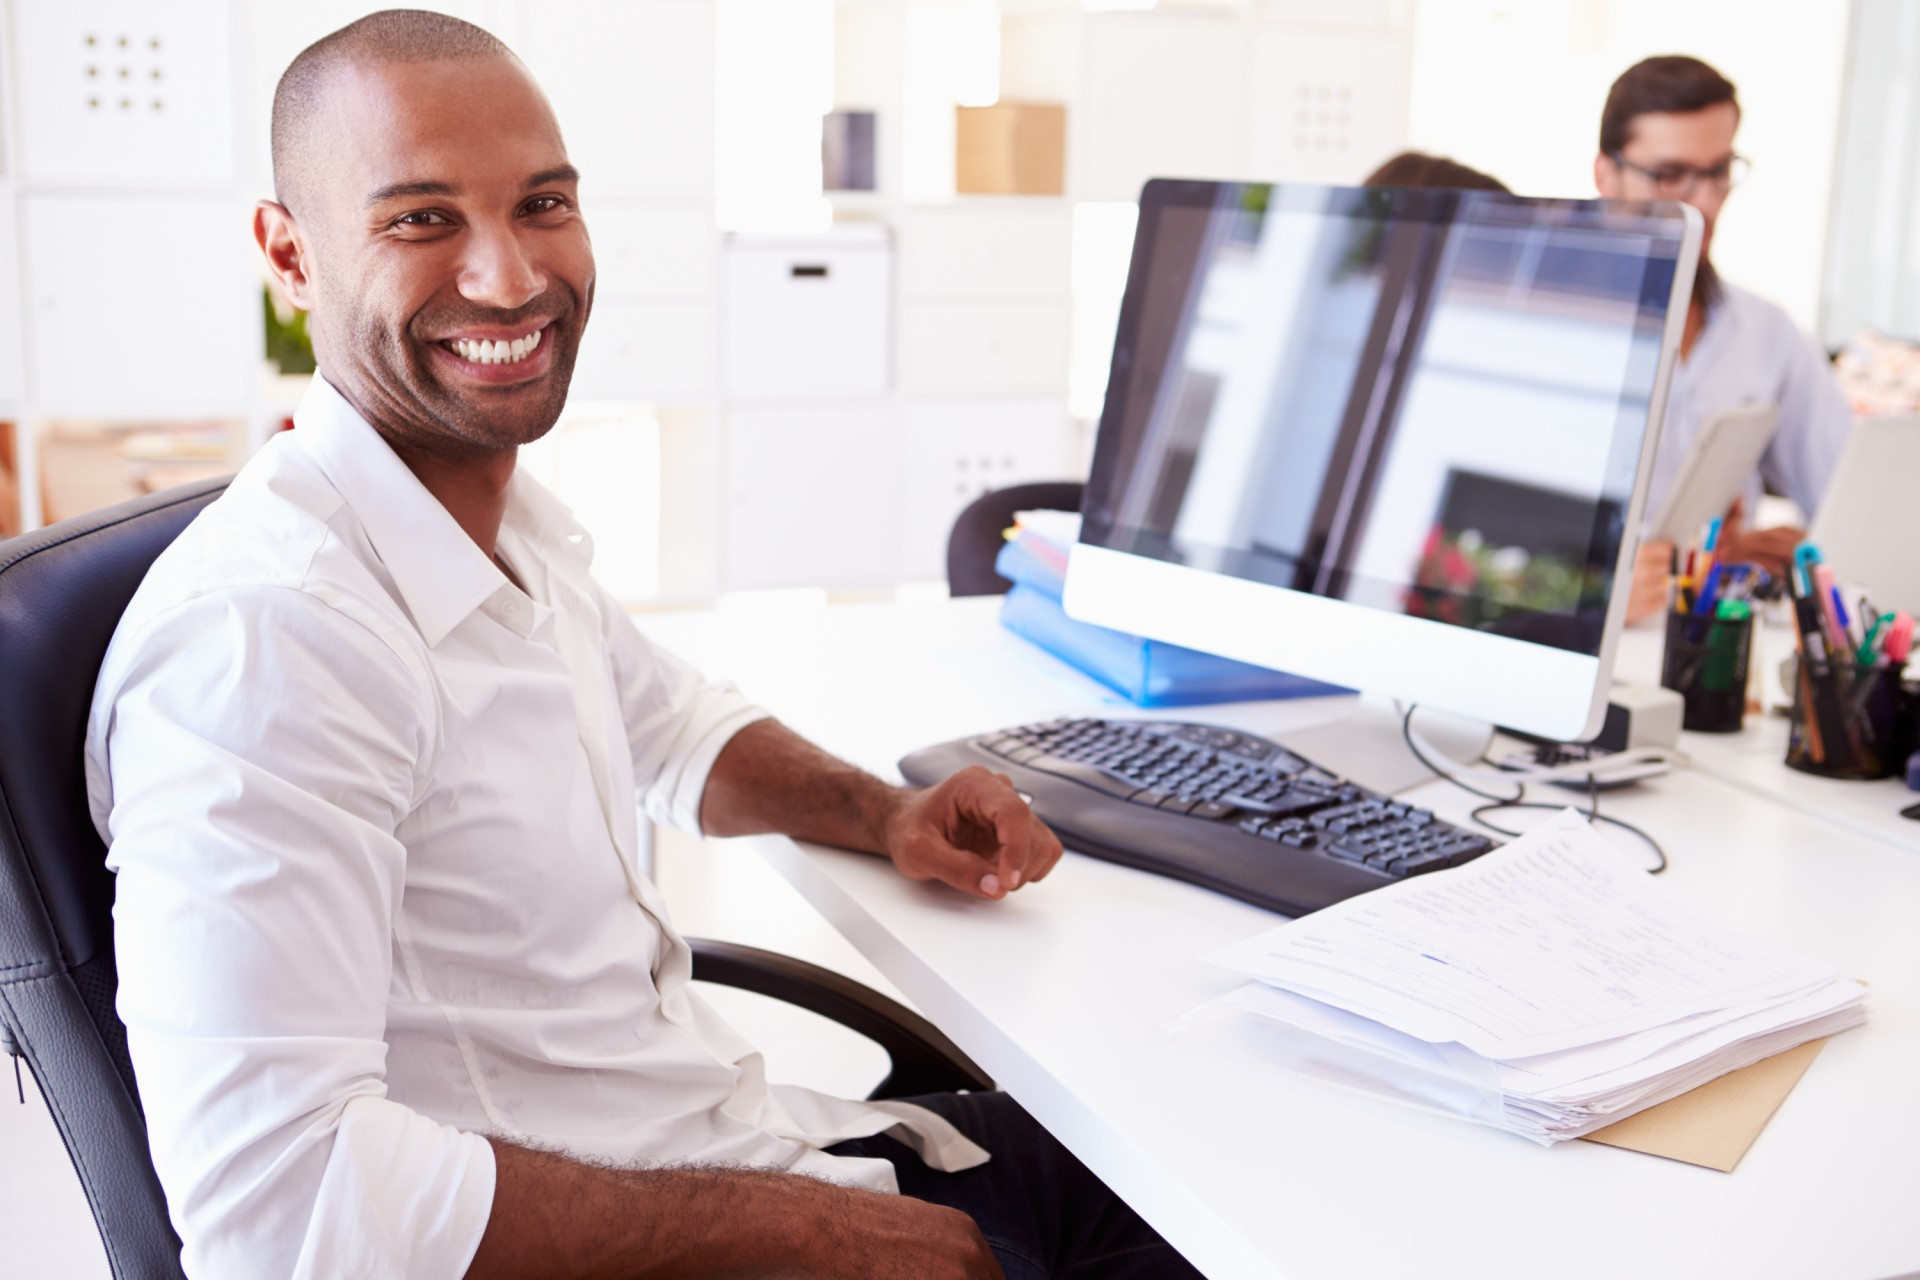 Man smiling sitting a desk.